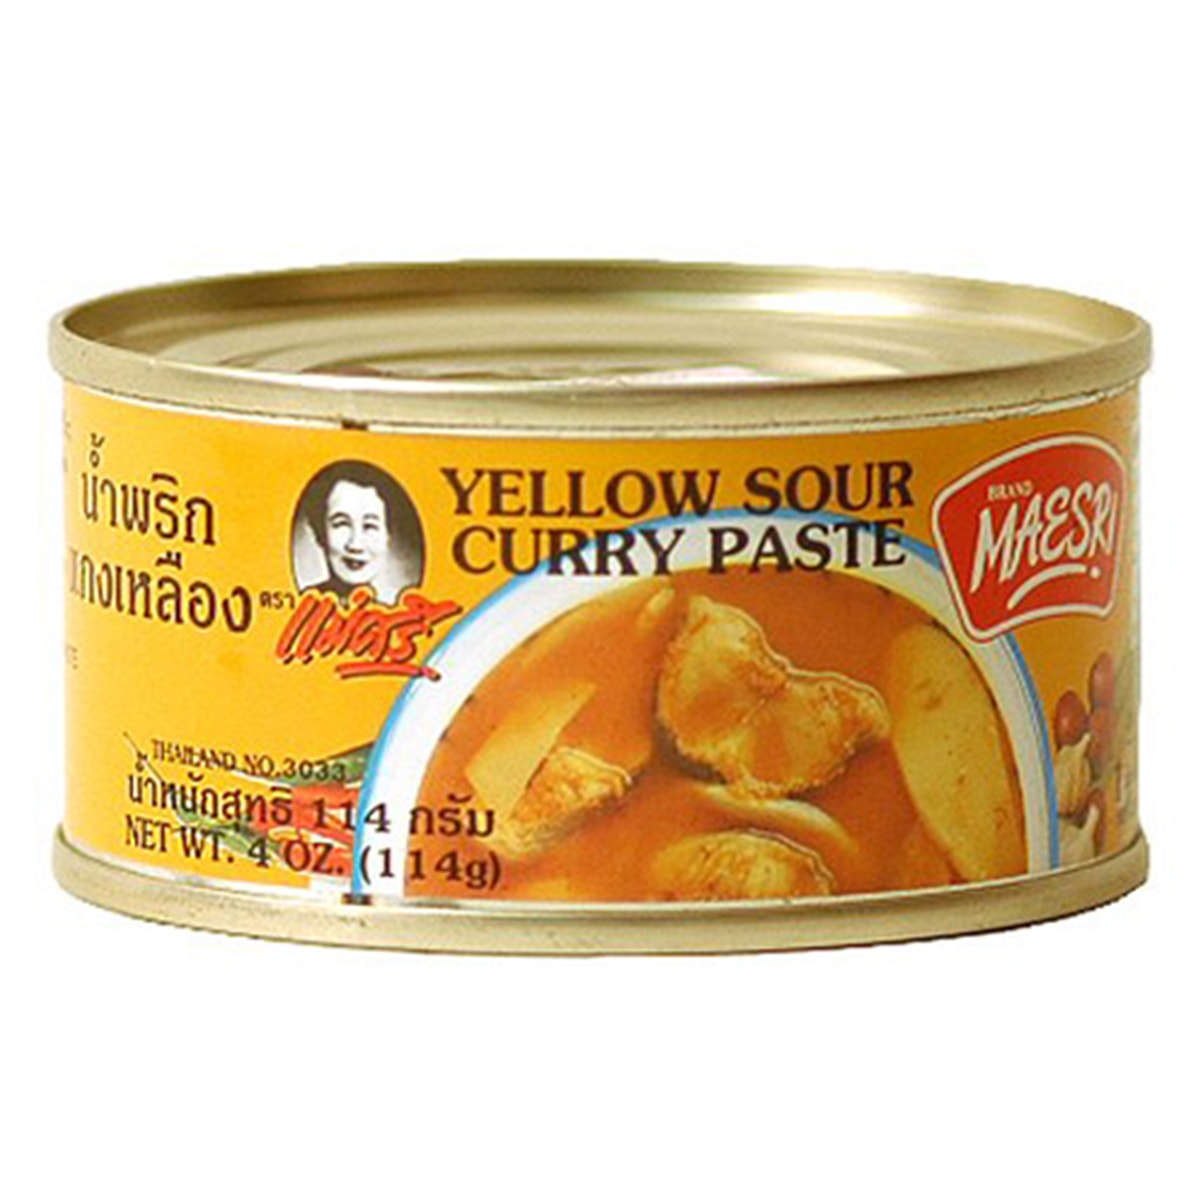 Buy Maesri Yellow Sour Curry Paste - 114 gm